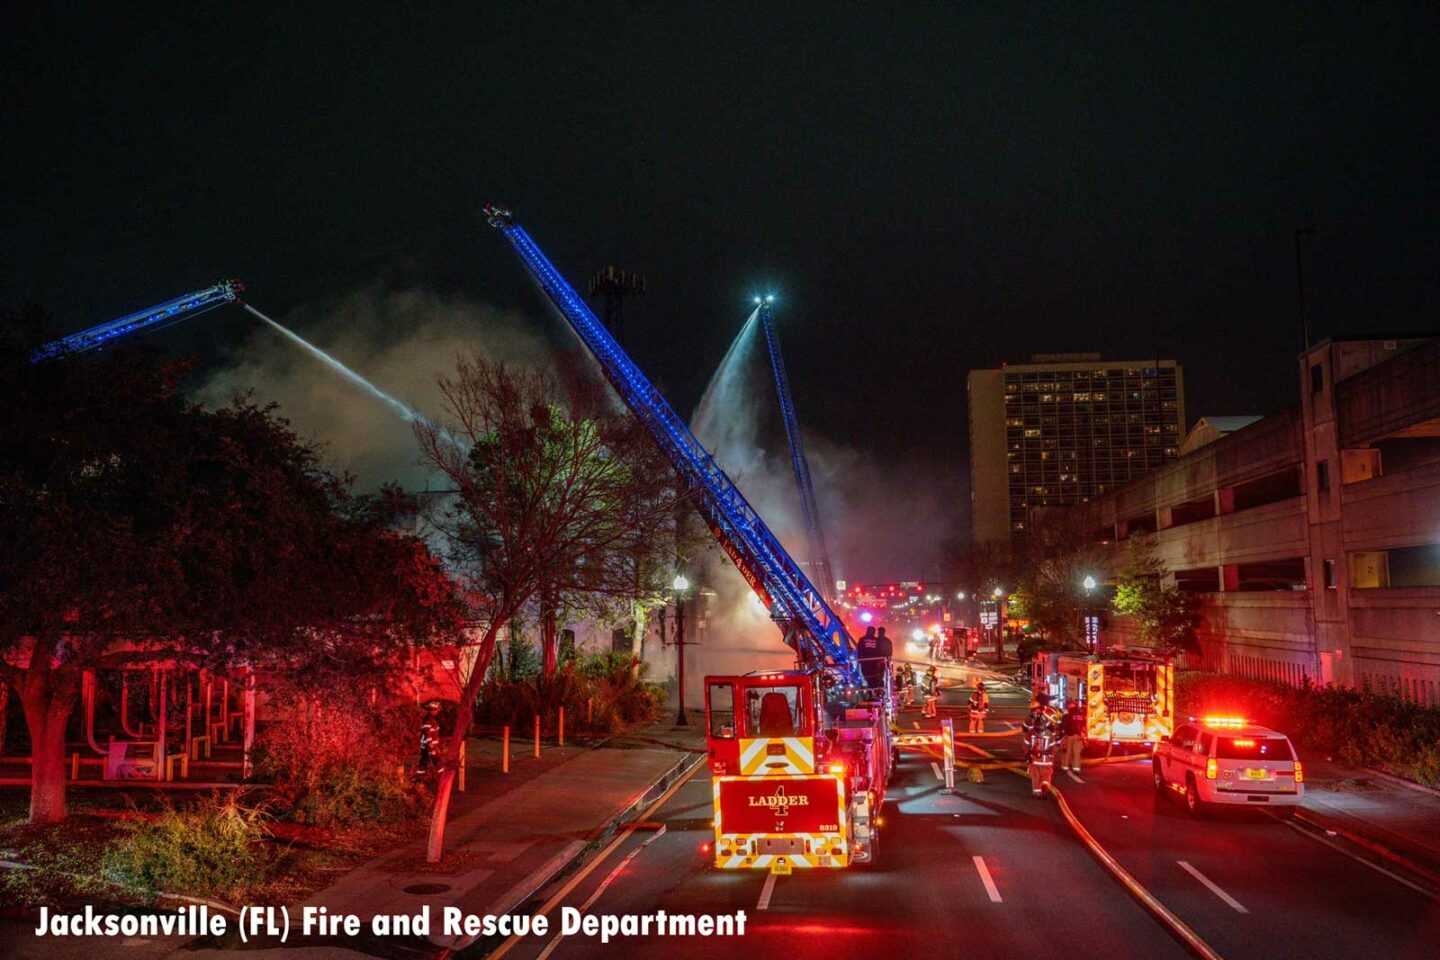 Multiple aerials in use at Jacksonville commercial fire